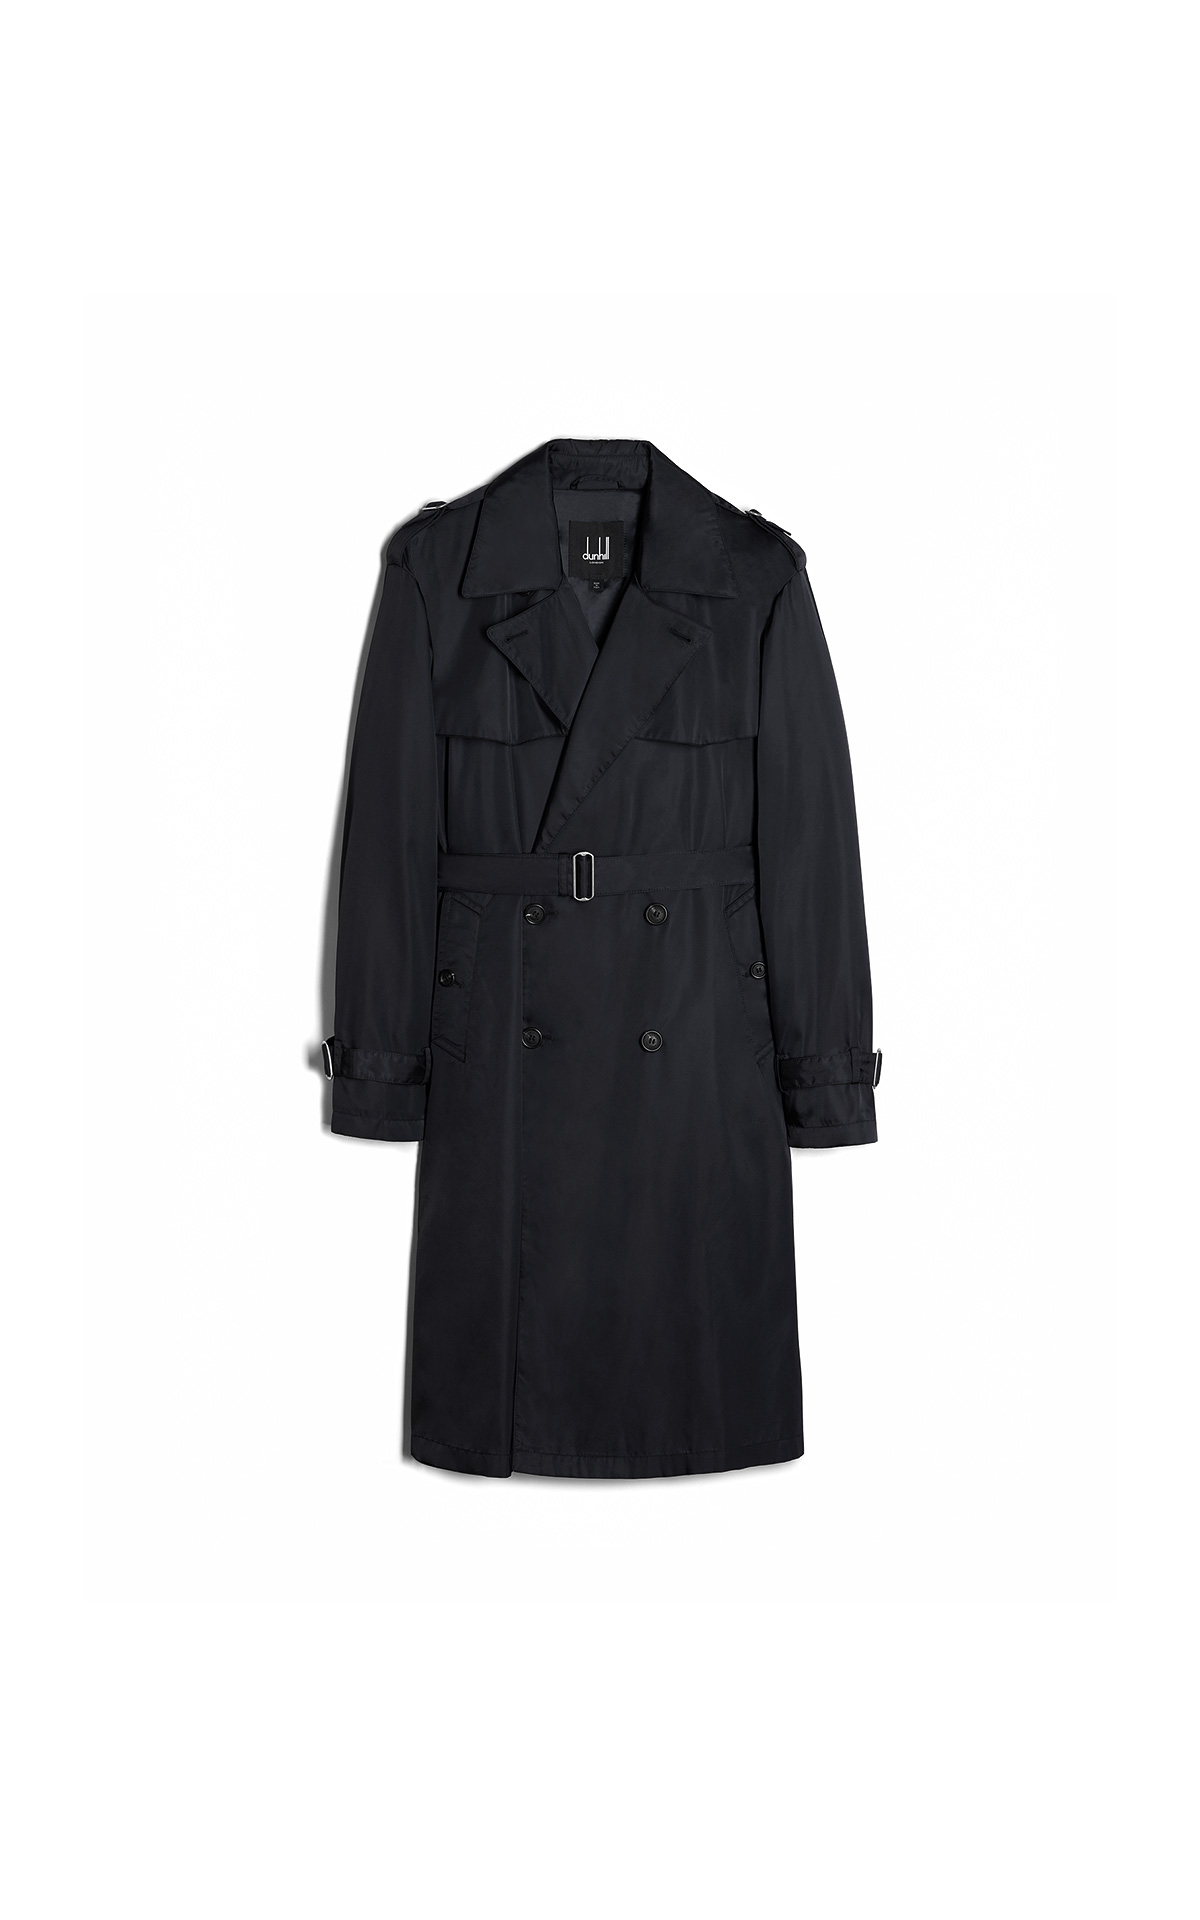 dunhill Black trench coat | La Vallée Village